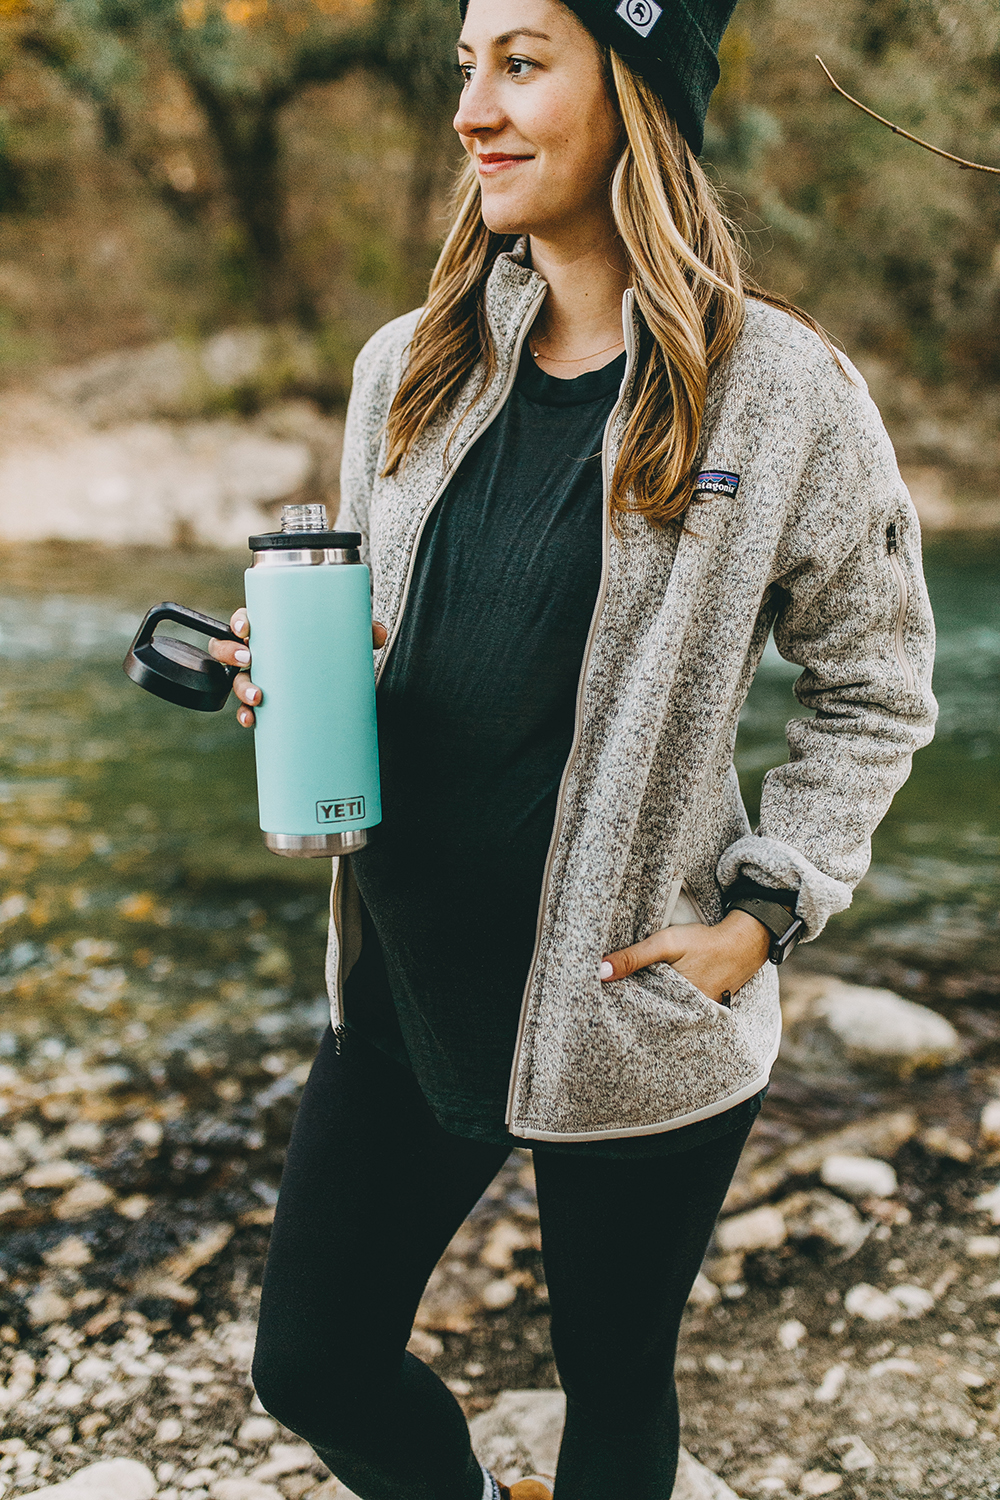 livvyland-blog-olivia-watson-austin-texas-fashion-lifestyle-blogger-backcountry-patagonia-better-sweater-jacket-sorel-hiking-boots-yeti-rambler-bottle-hiking-outfit-5